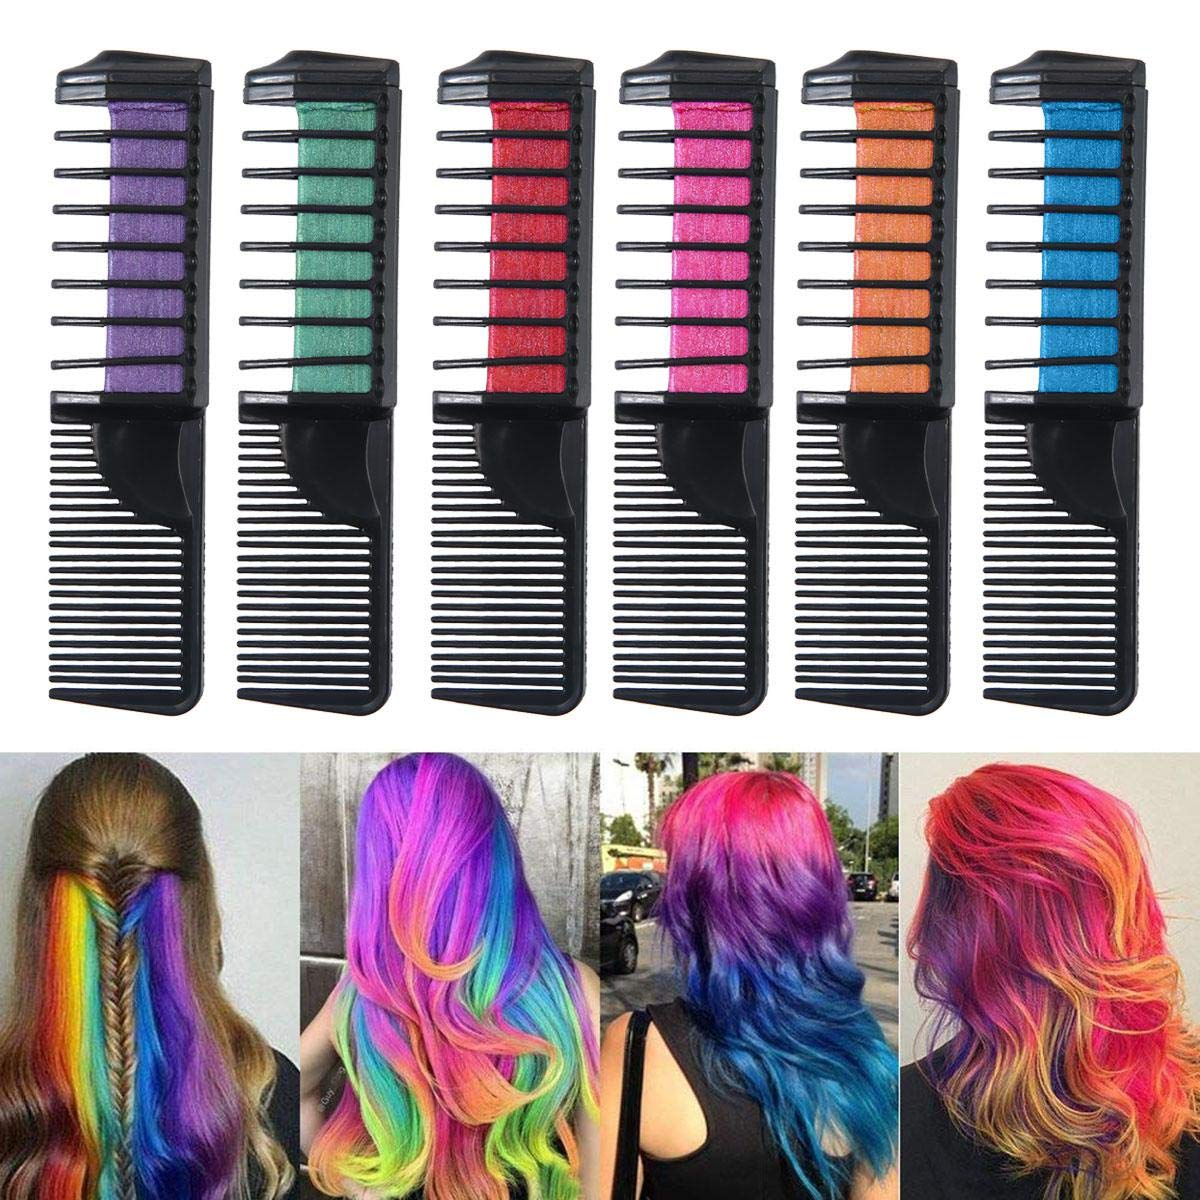 Aolvo Hair Chalk Combs Set Temporary Hair Chalk Hair Dye Kit for Women Boys Girls[2018 Newest Design] Cheap Non-Toxic Washable Hair Dye for Hair Dyeing Party Cosplay DIY,Works on All Hair Colors,6PCS